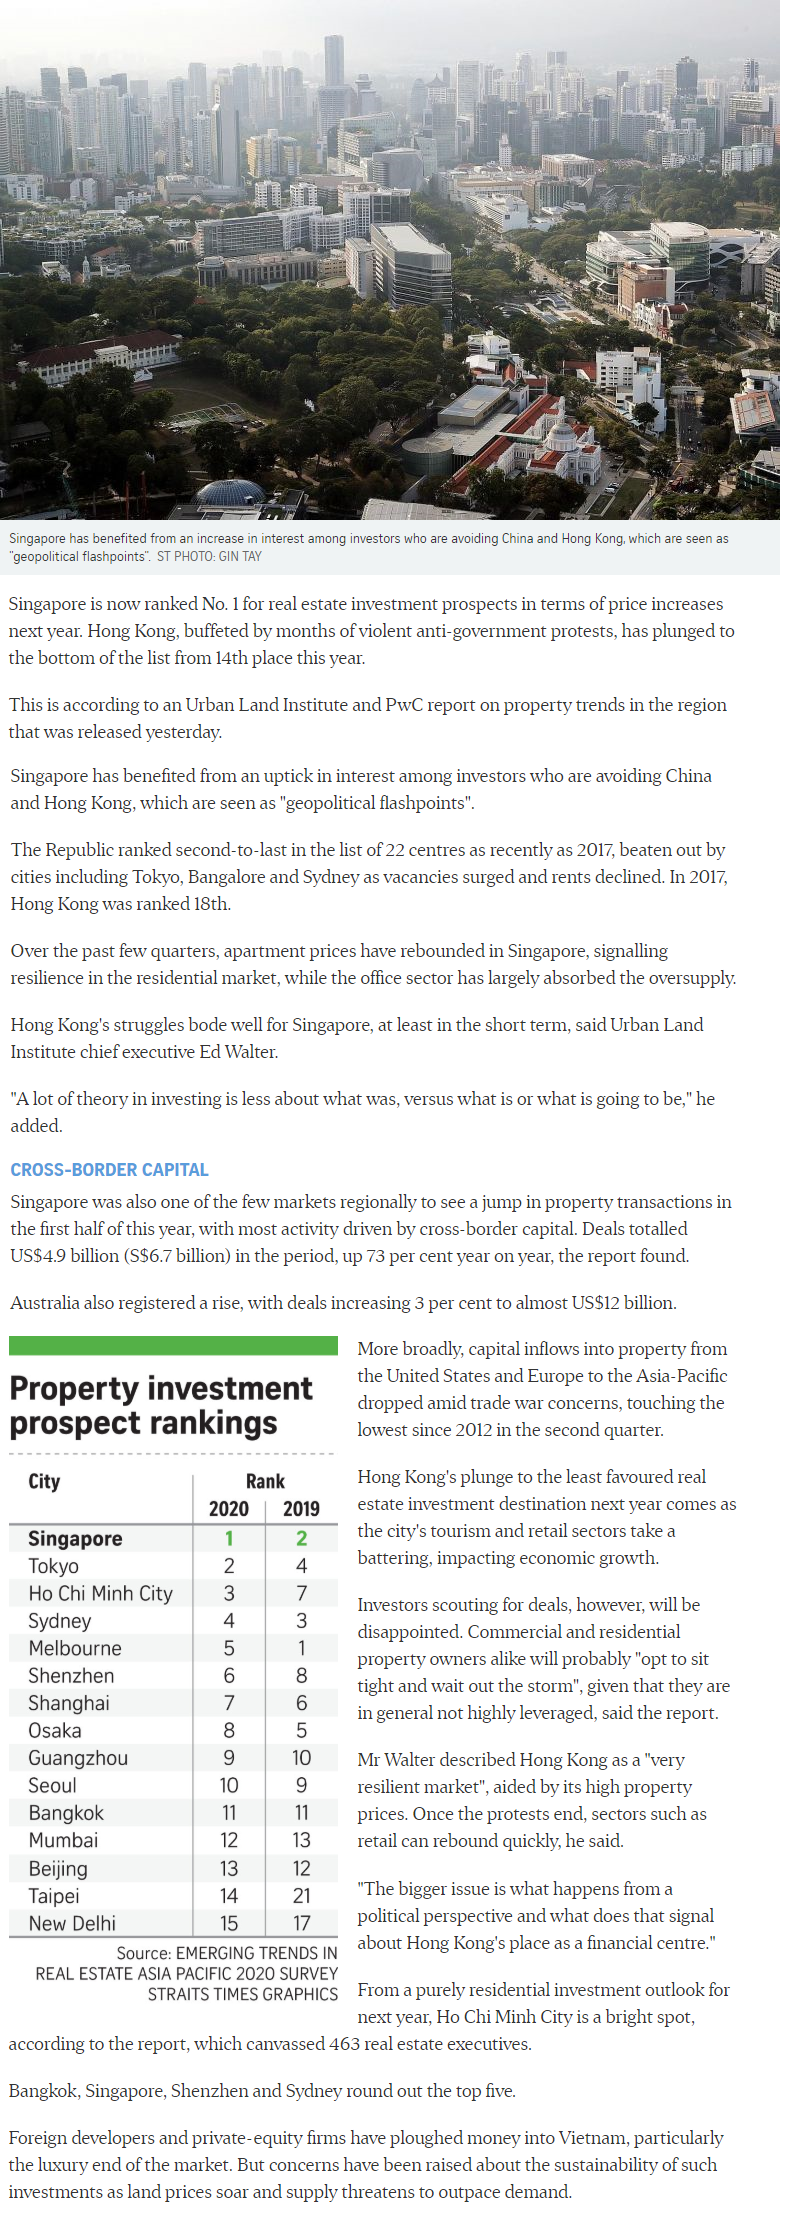 Pasir Ris 8 - Singapore Tops Region For Property Investment Prospects